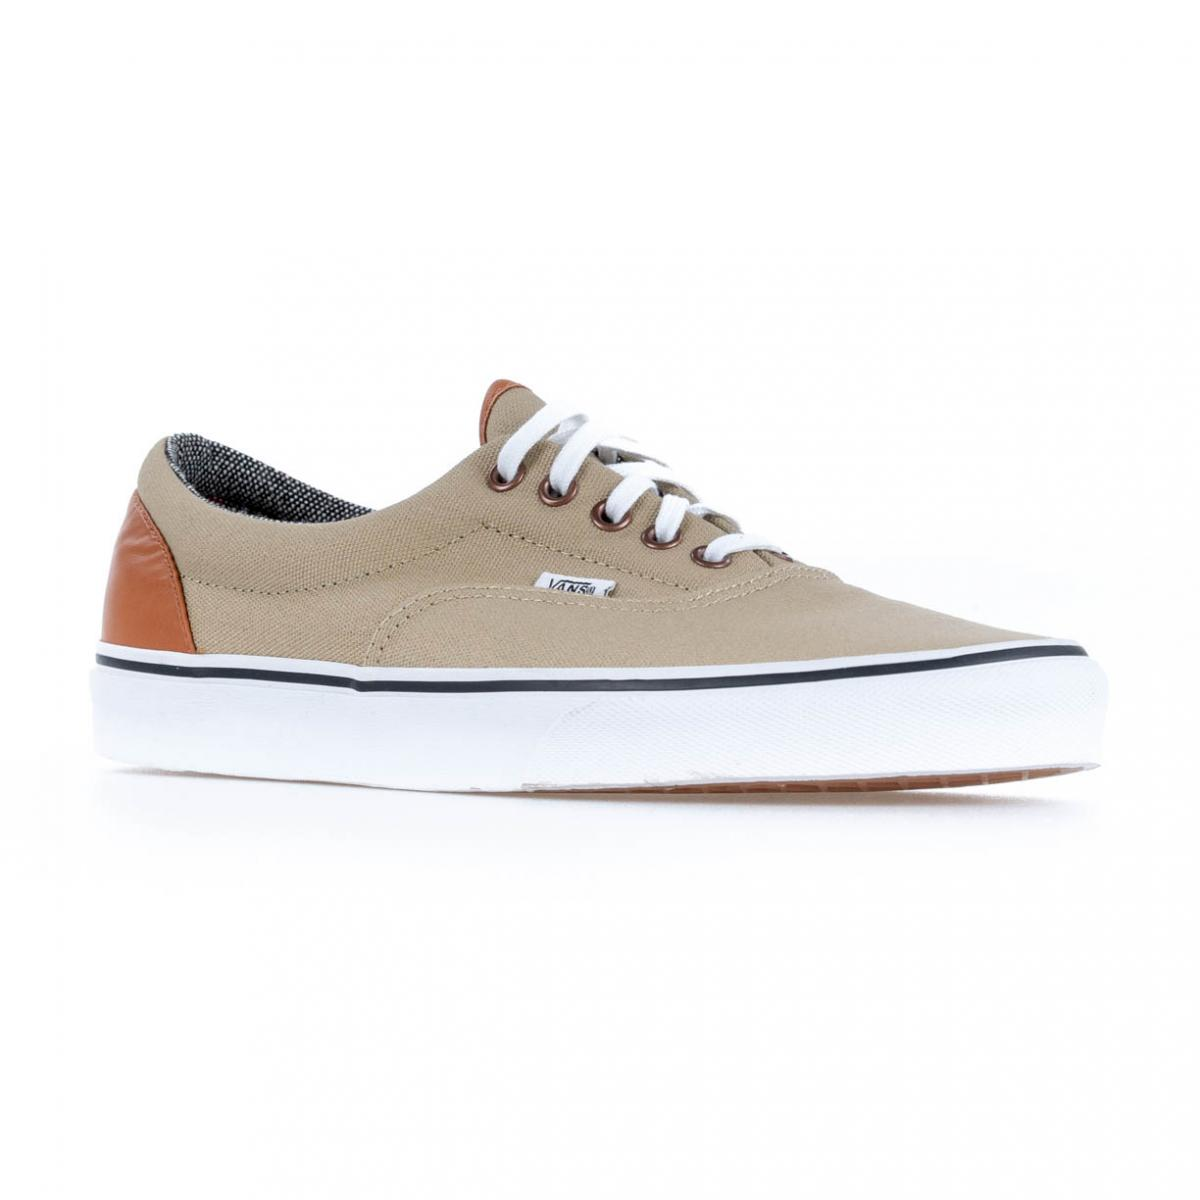 SCARPA UNISEX VANS ERA VN-0 Y6XF7W (C&L) LIGHT KHAKI/TEEWD